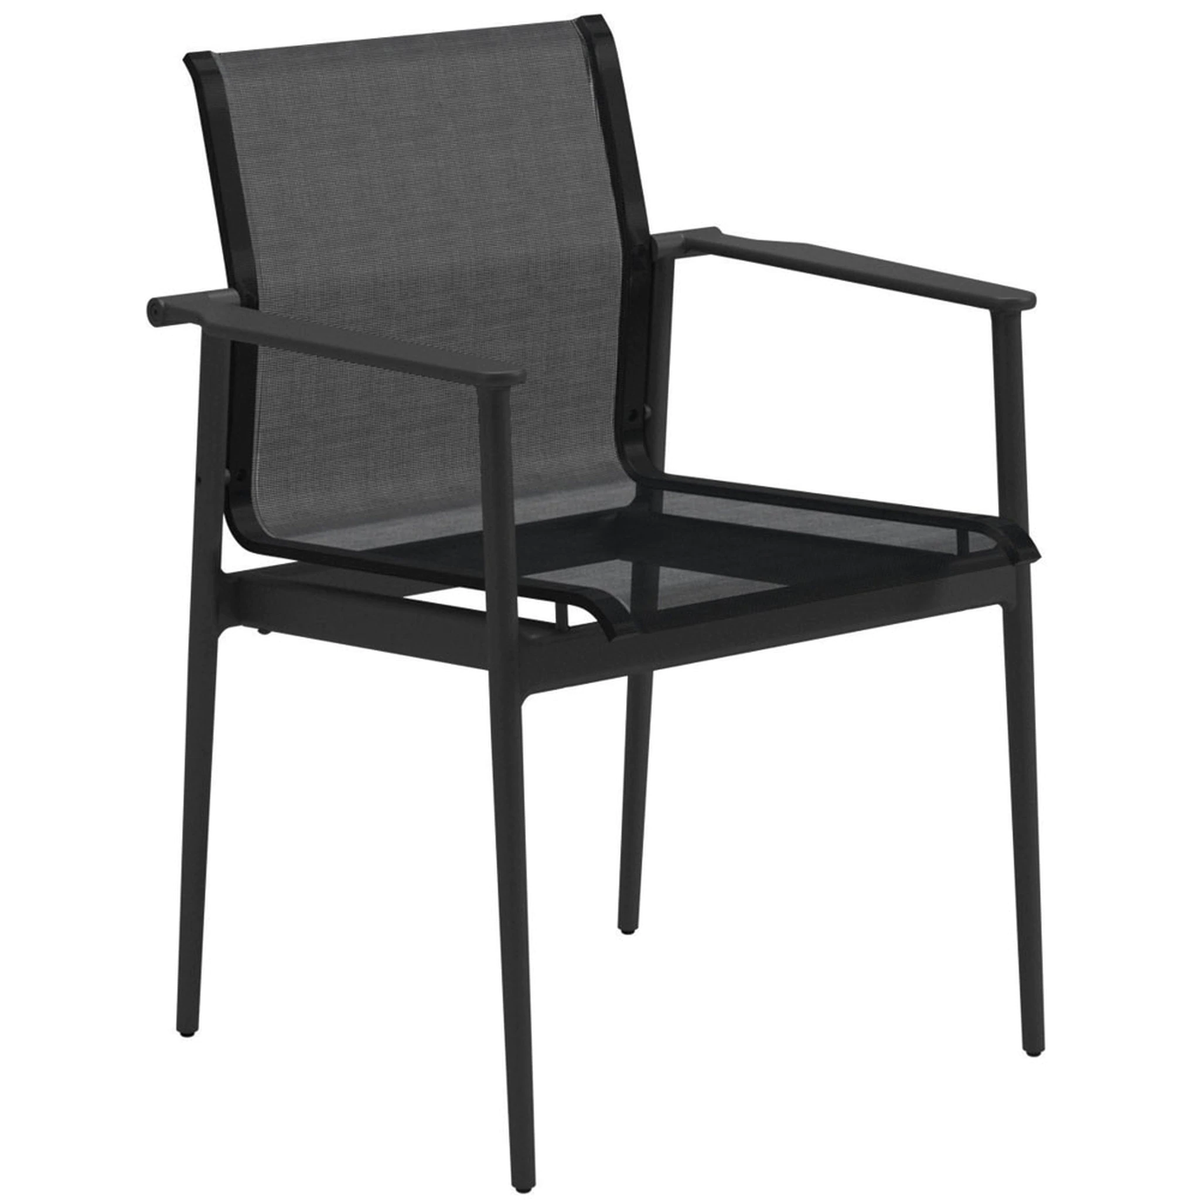 180 Stacking Dining Chair with arms